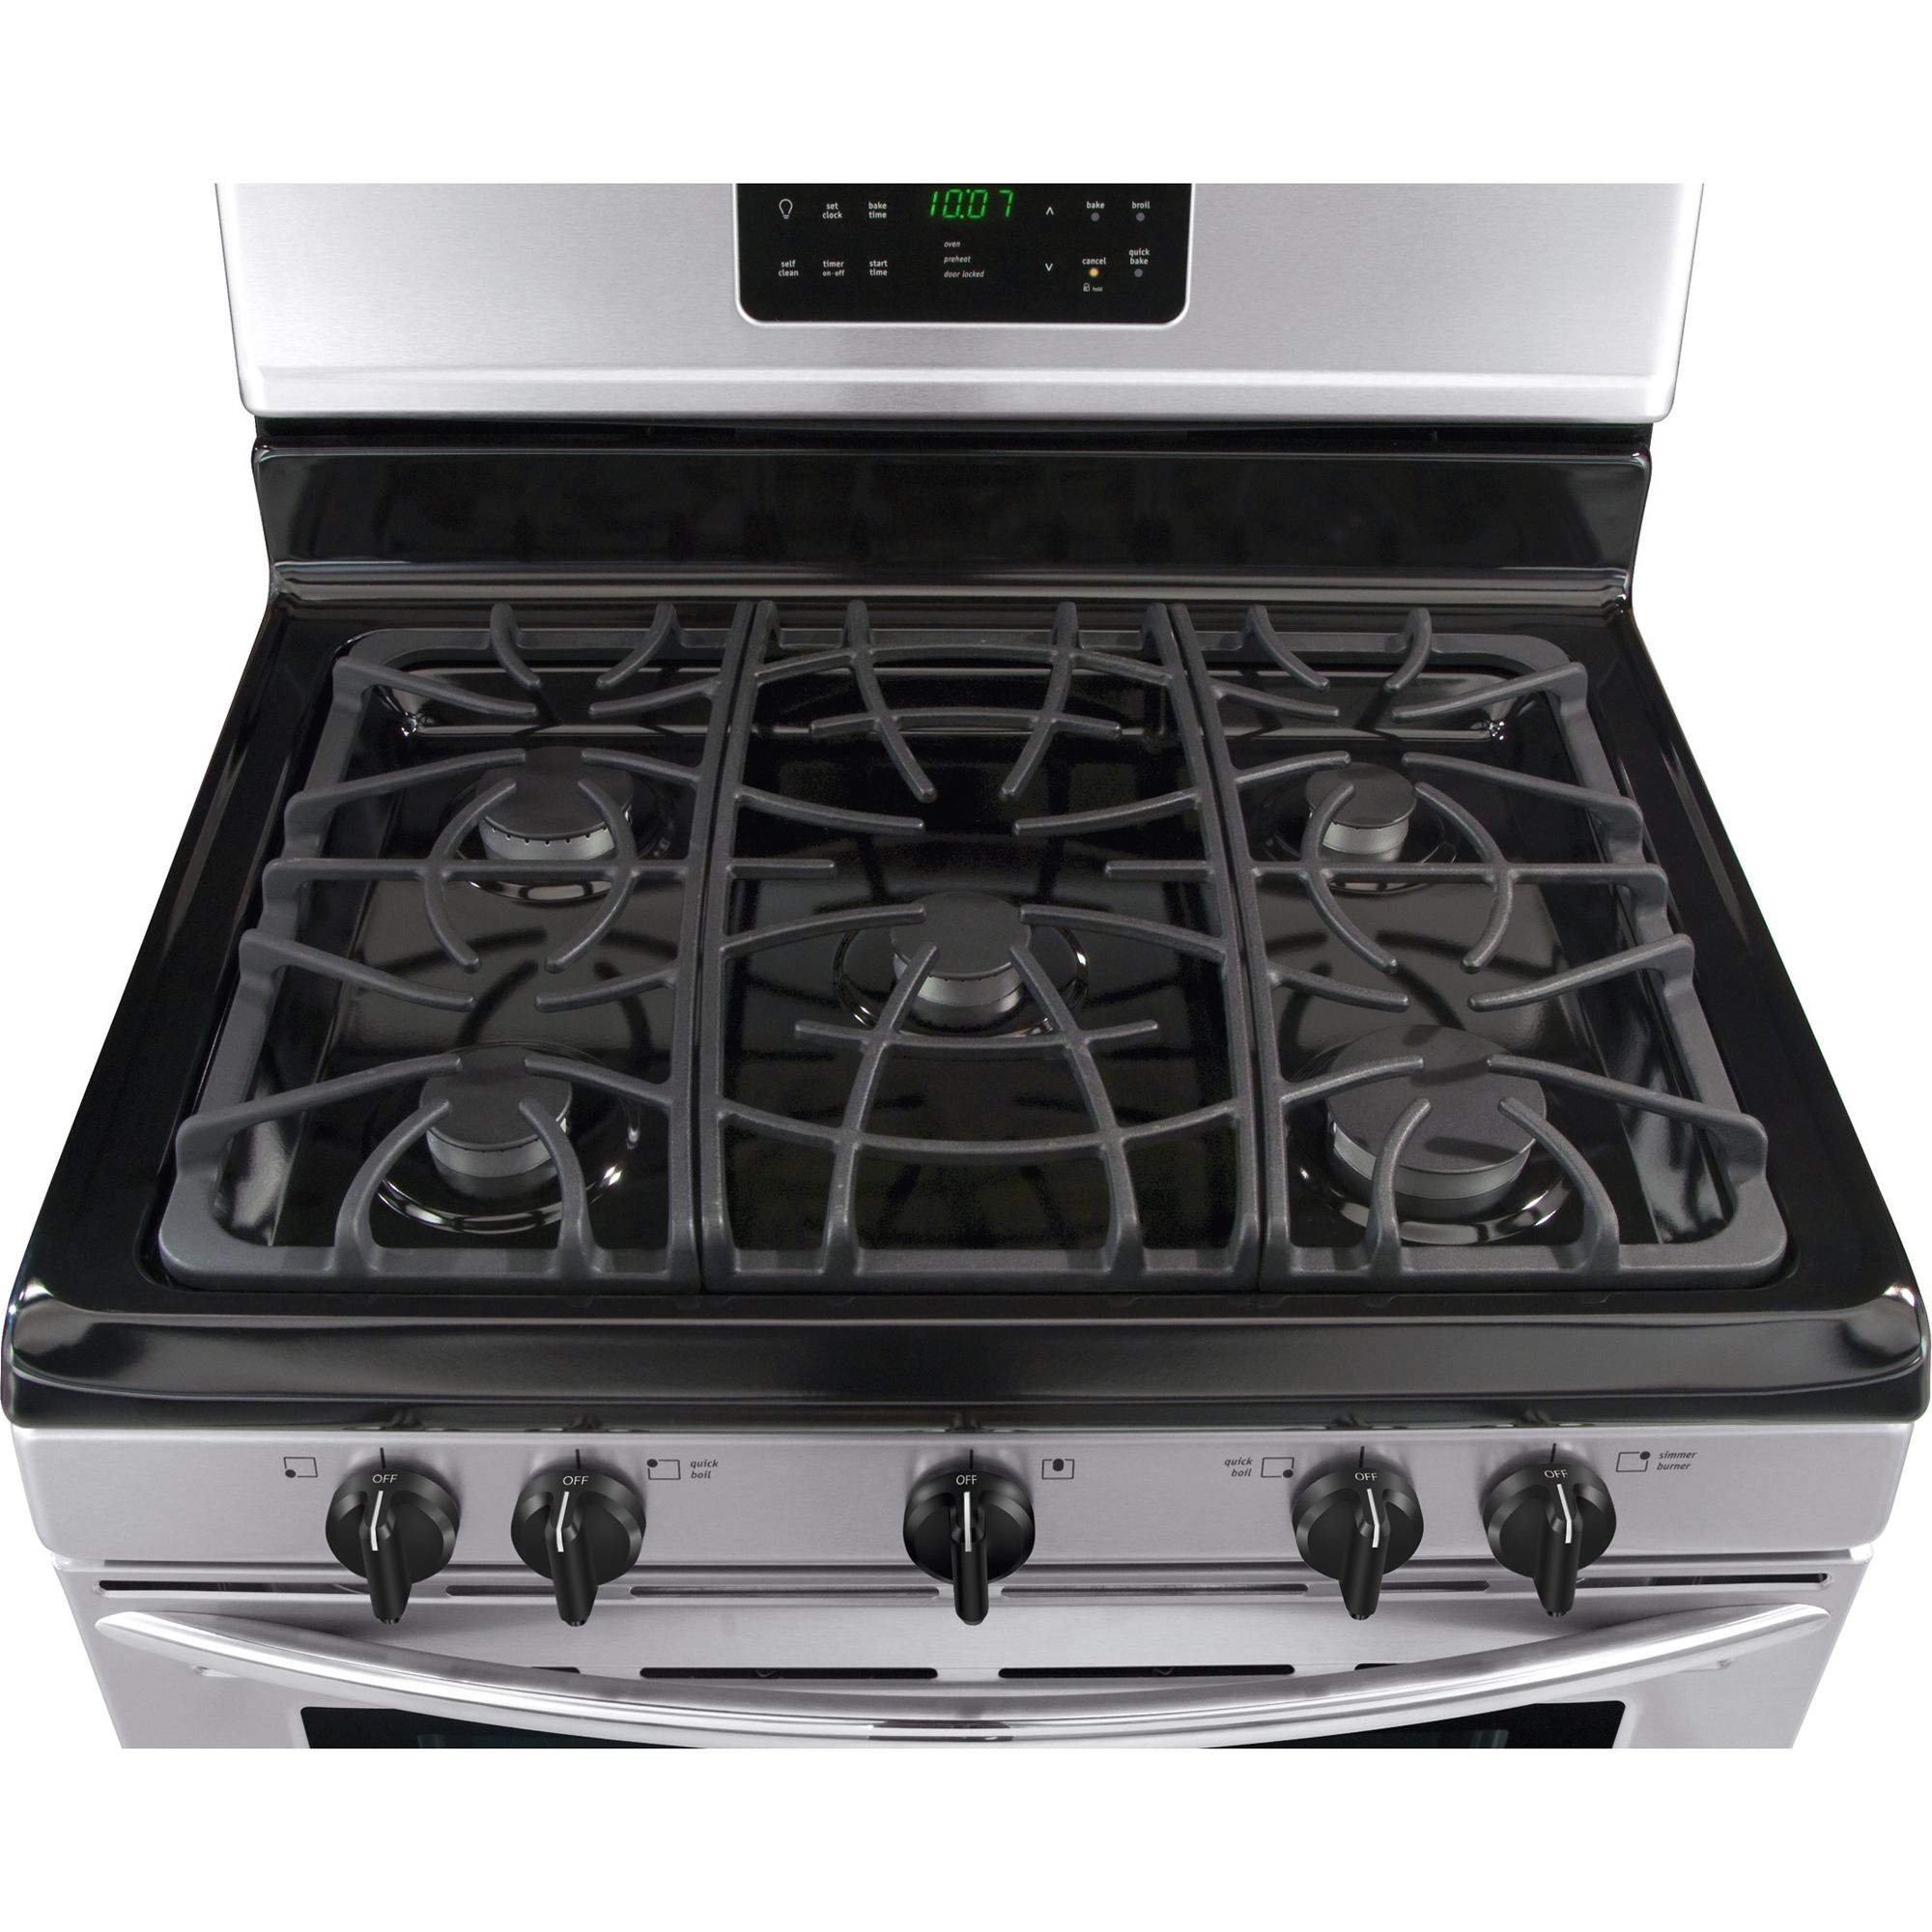 "Frigidaire Gallery 30"" Freestanding Gas Range - Black"